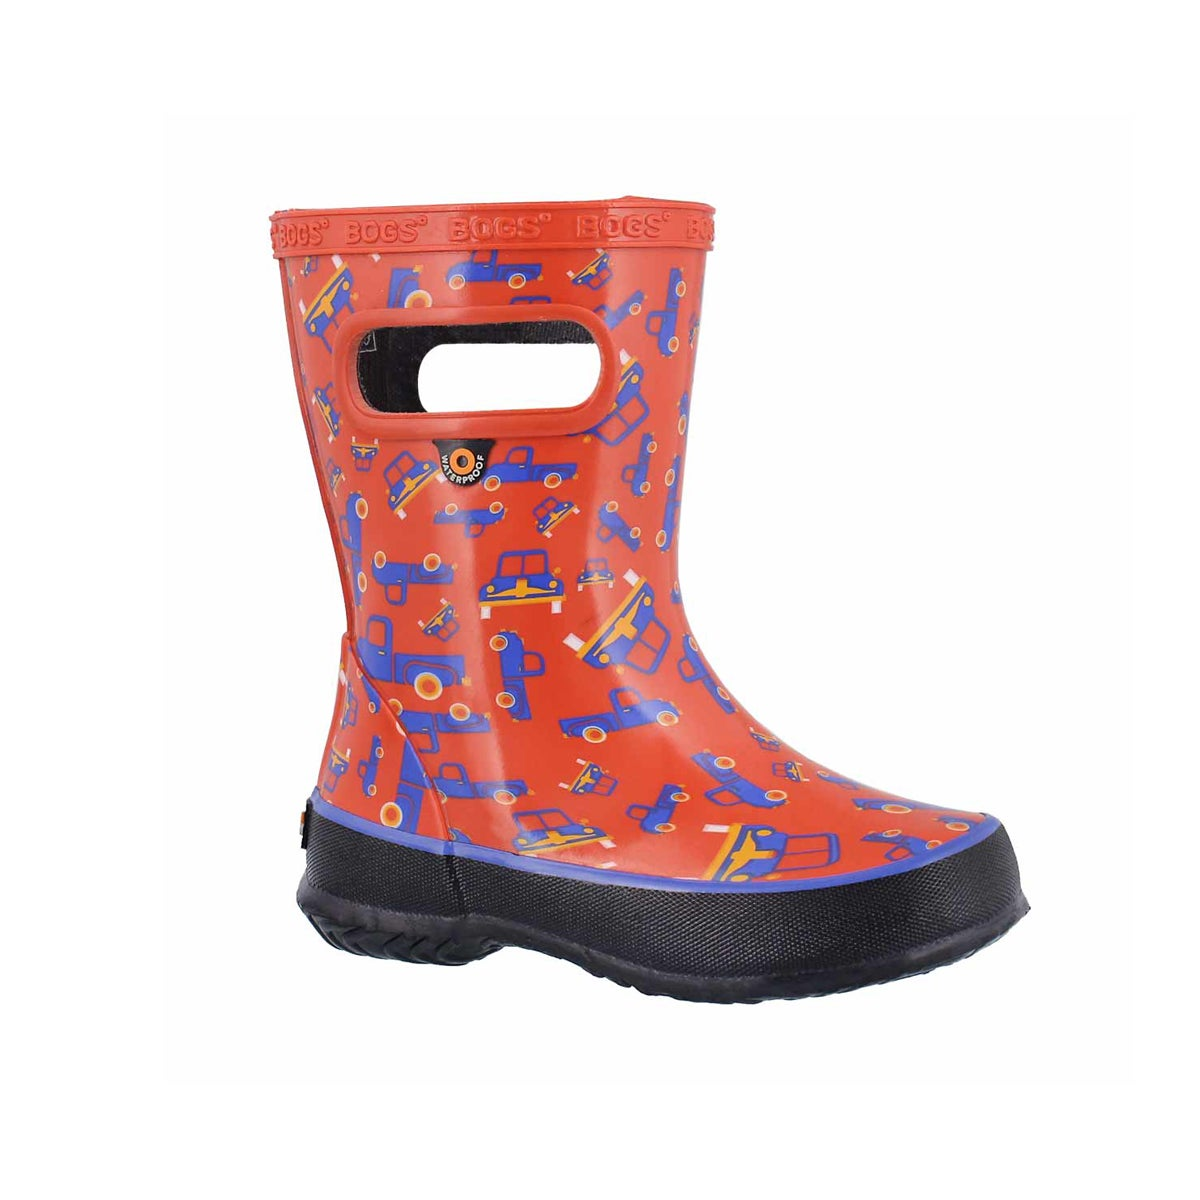 Infants' SKIPPER TRUCKS red multi rain boots